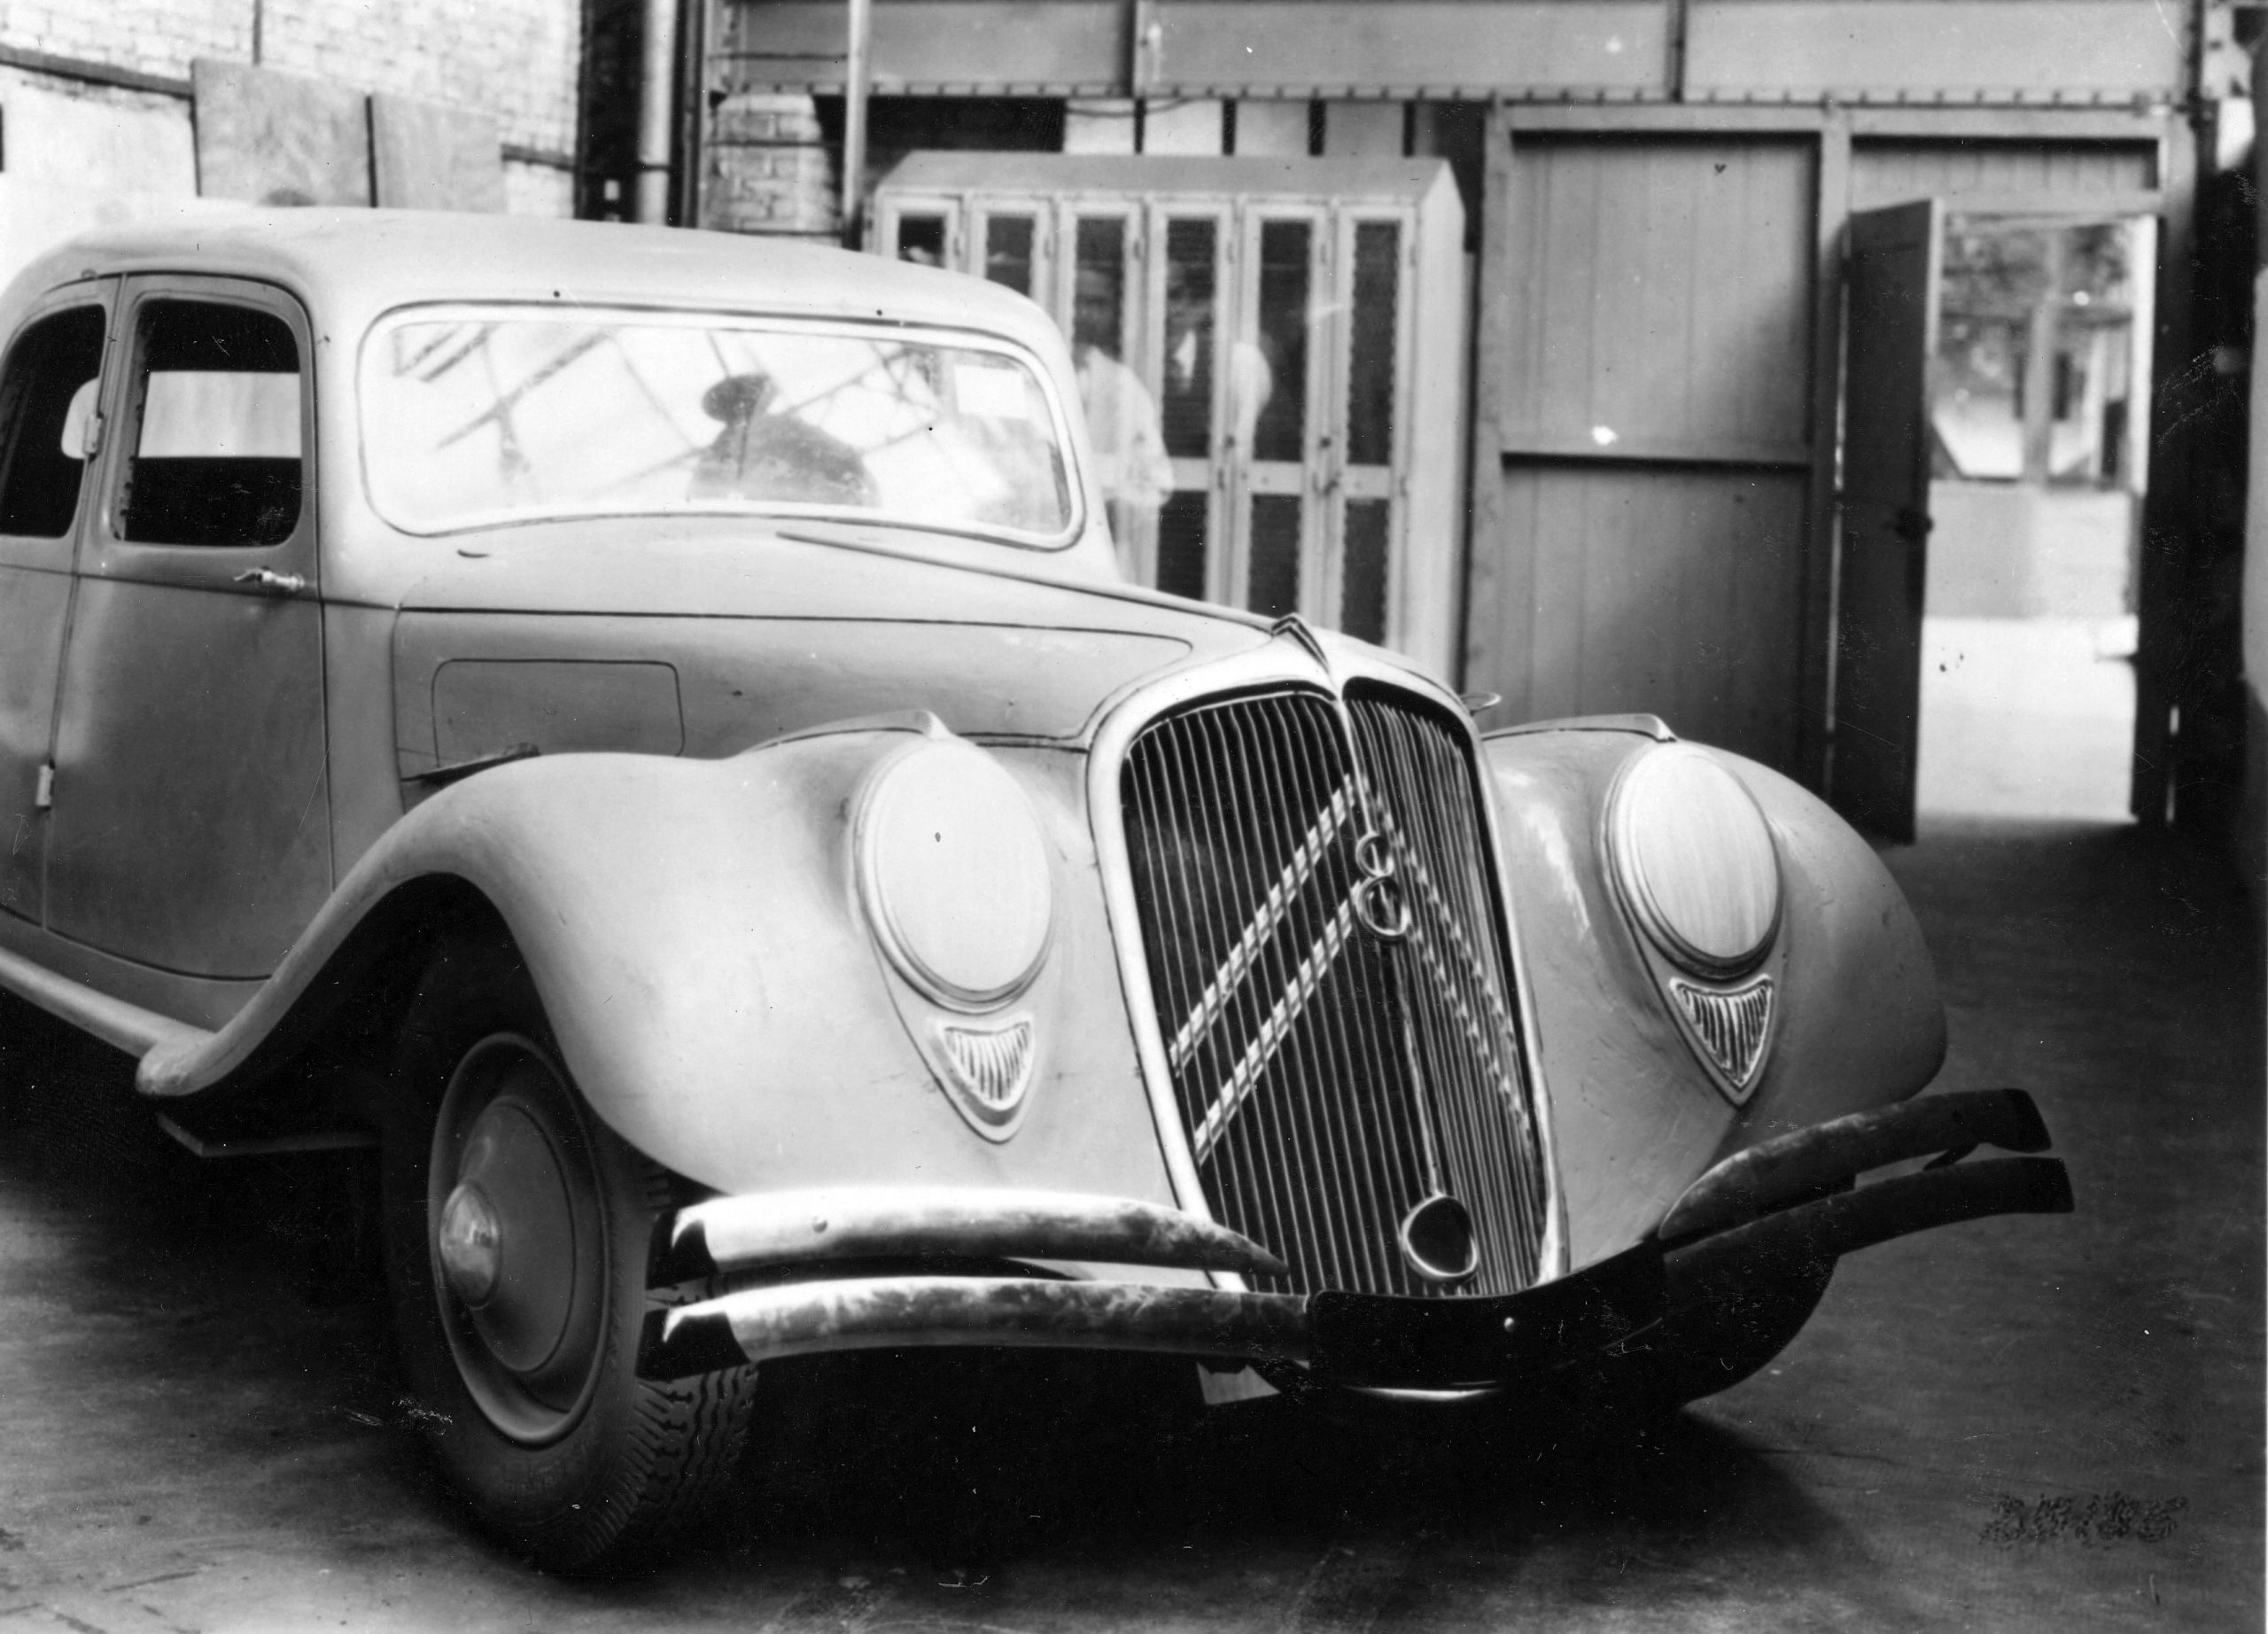 22CV: Citroën's V8-powered Traction Avant remains a riddle